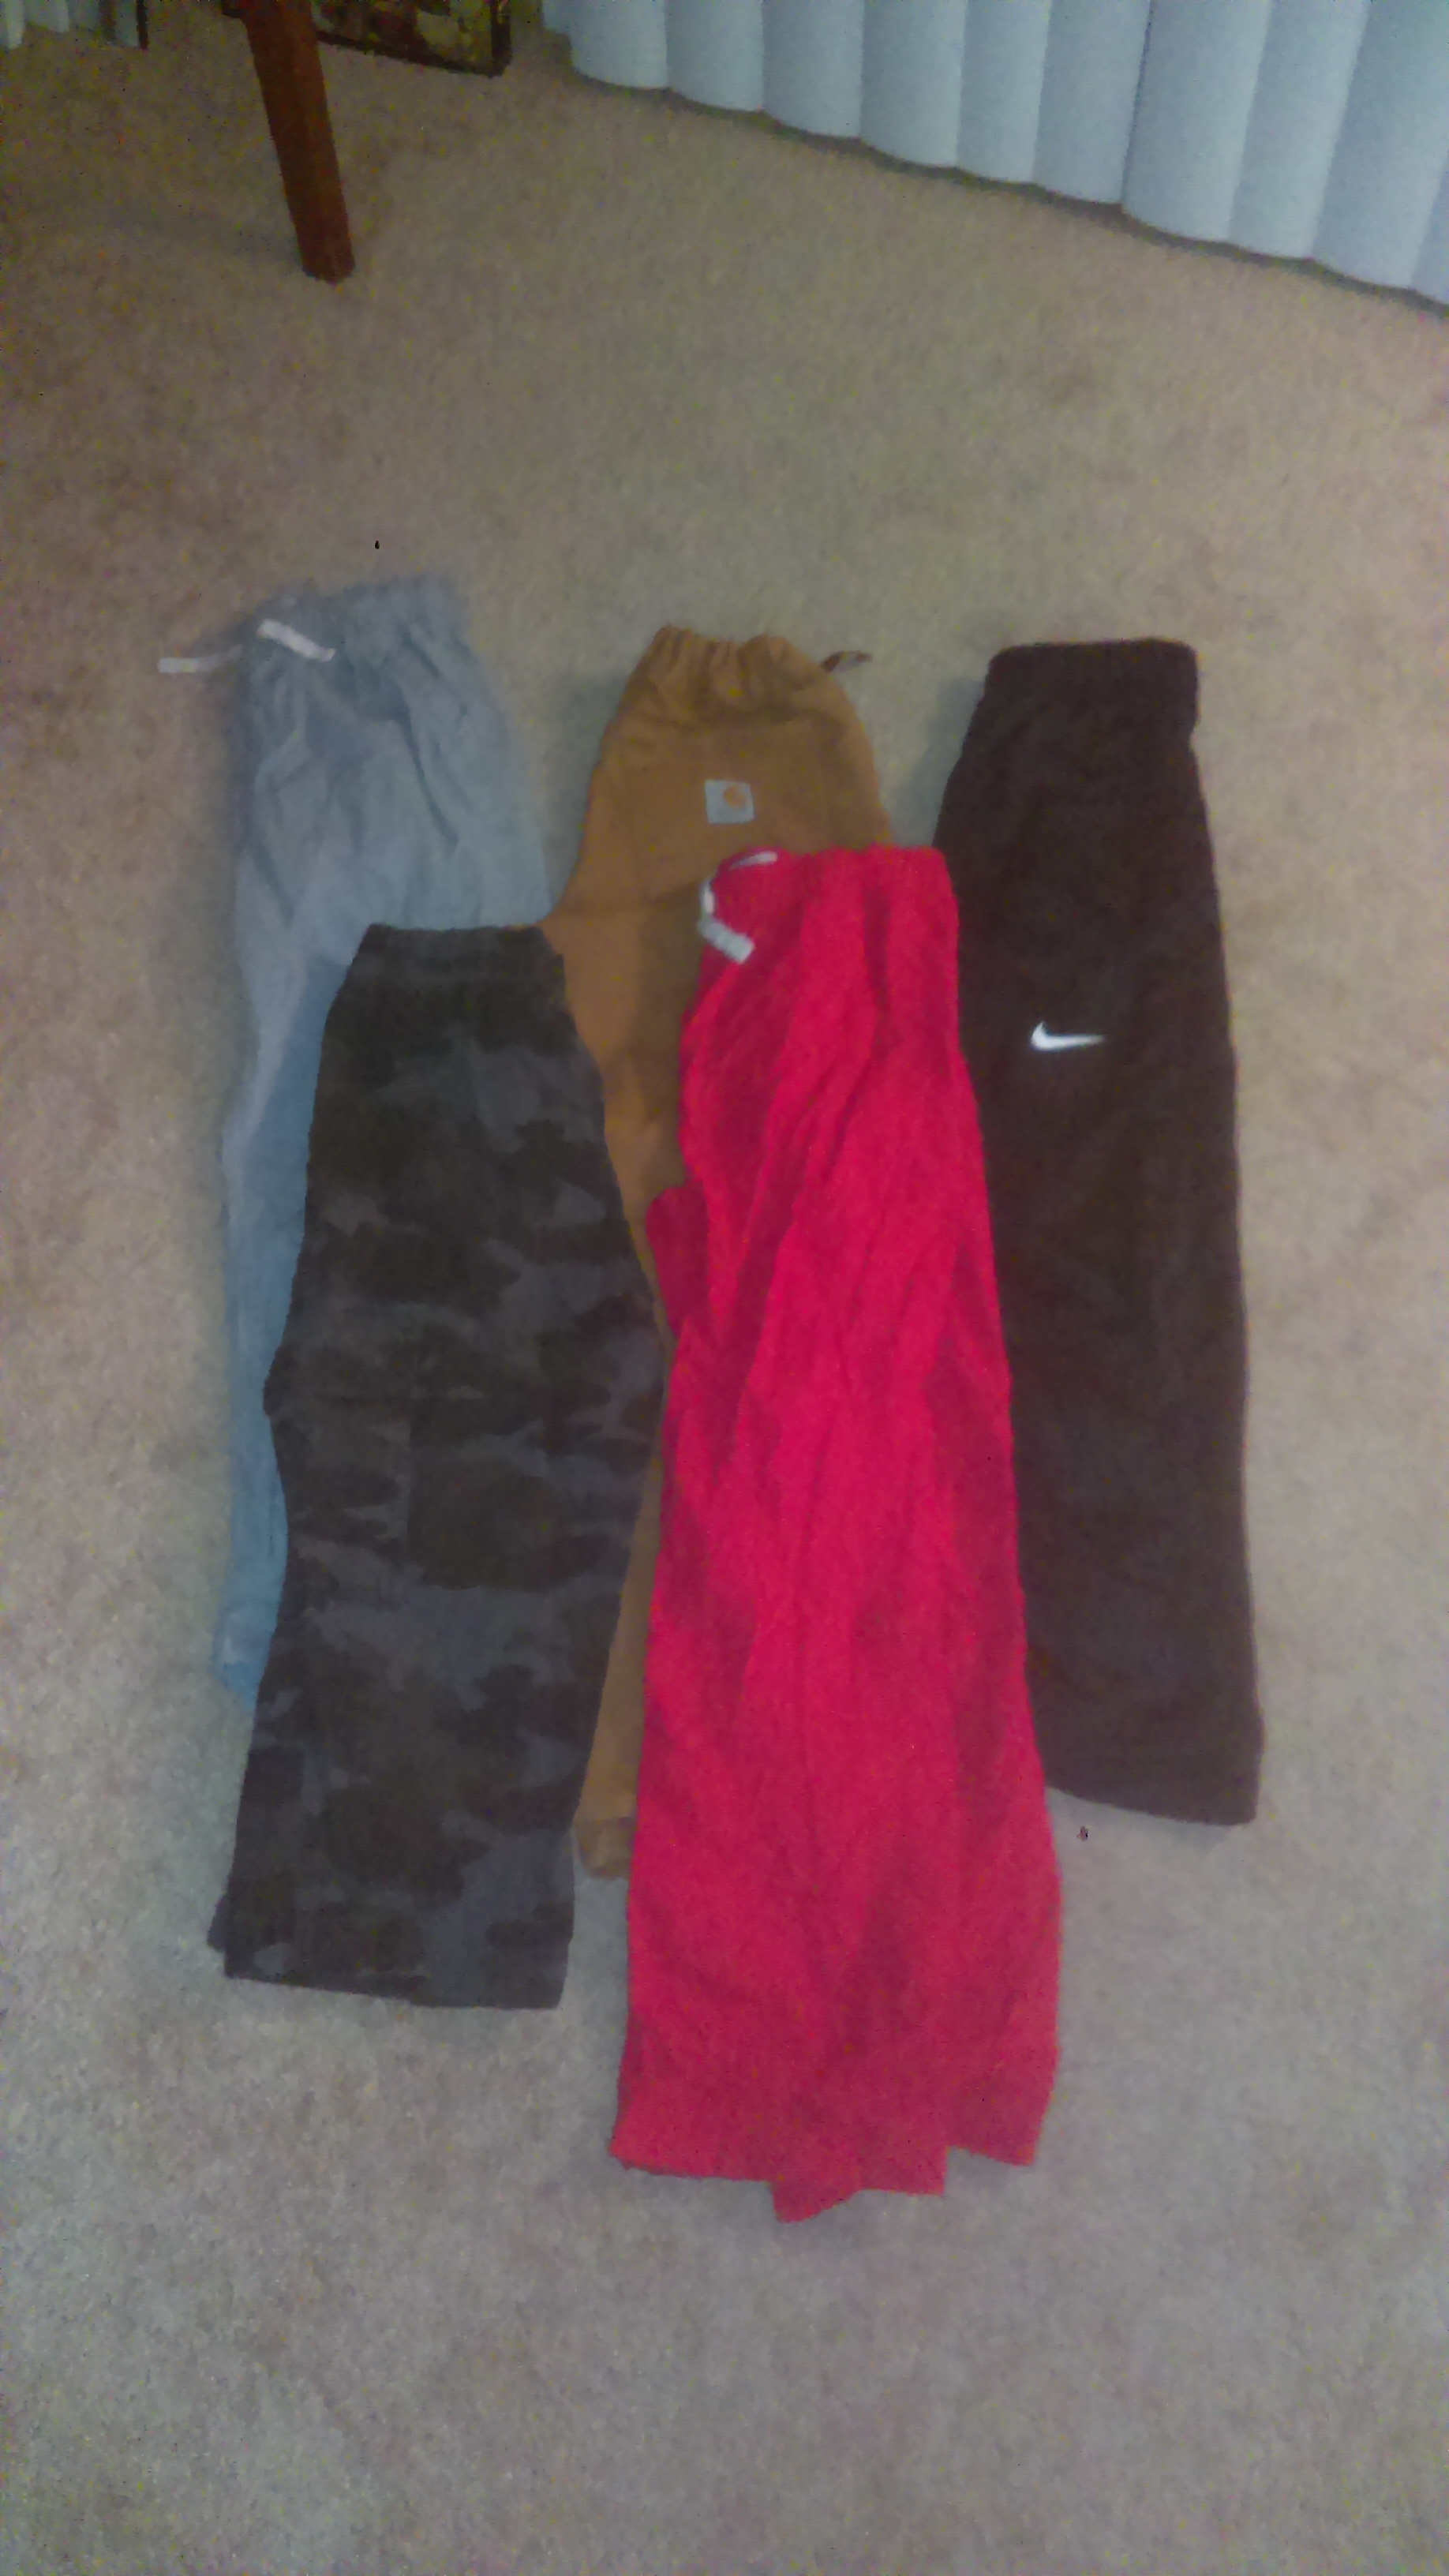 Carhart,  children's place, and Nike size 10